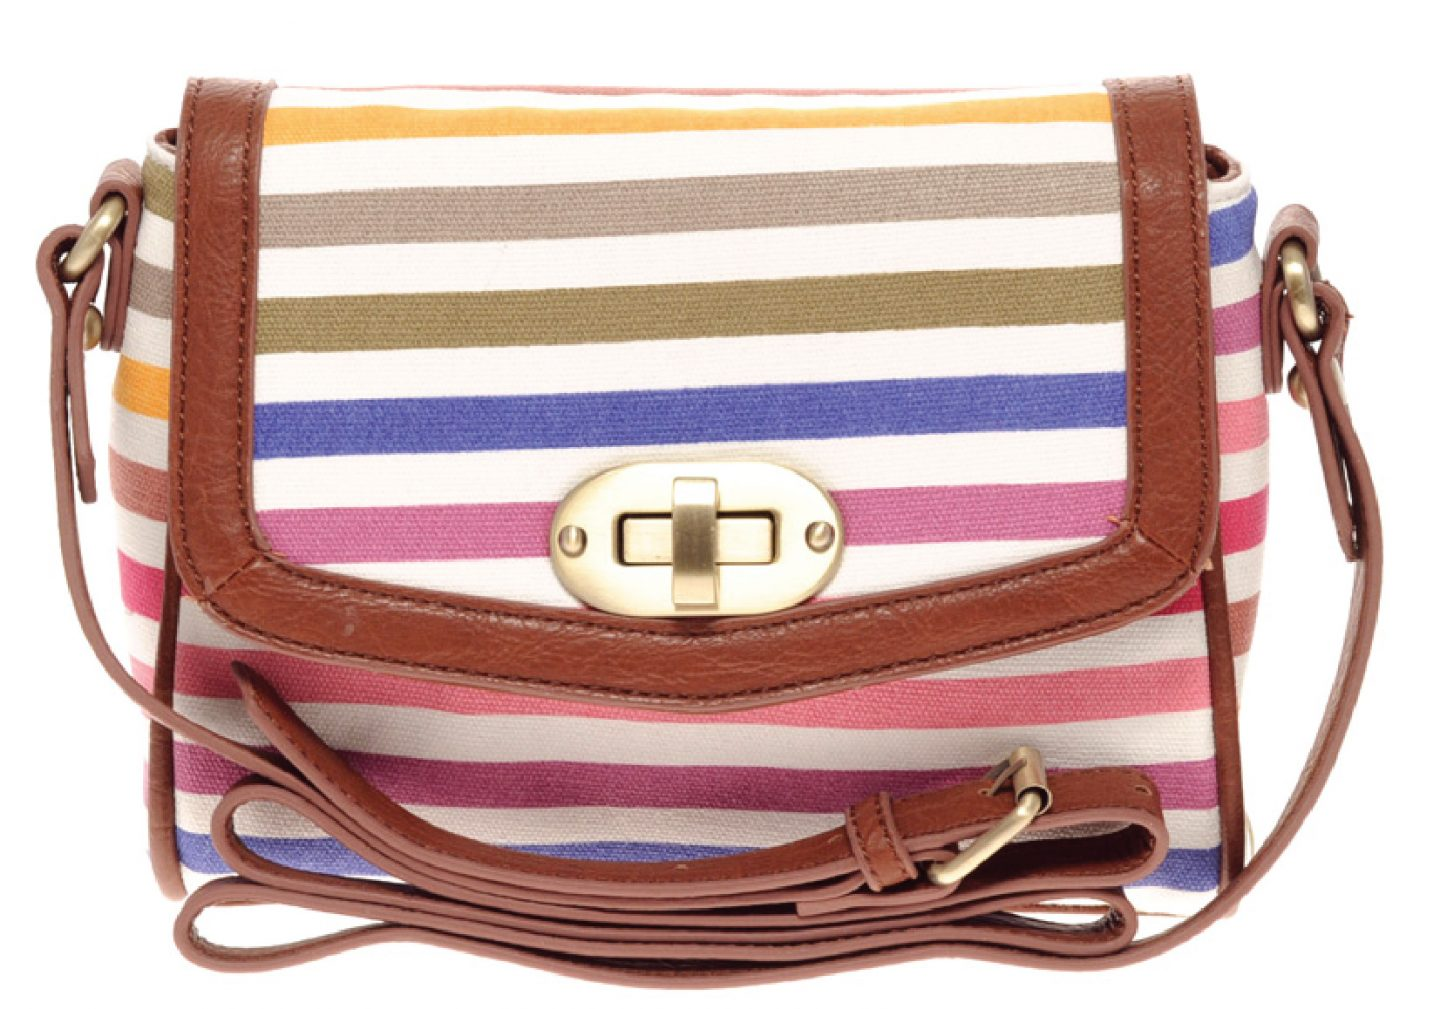 Aldo – Orear Stripe Crossbody Bag